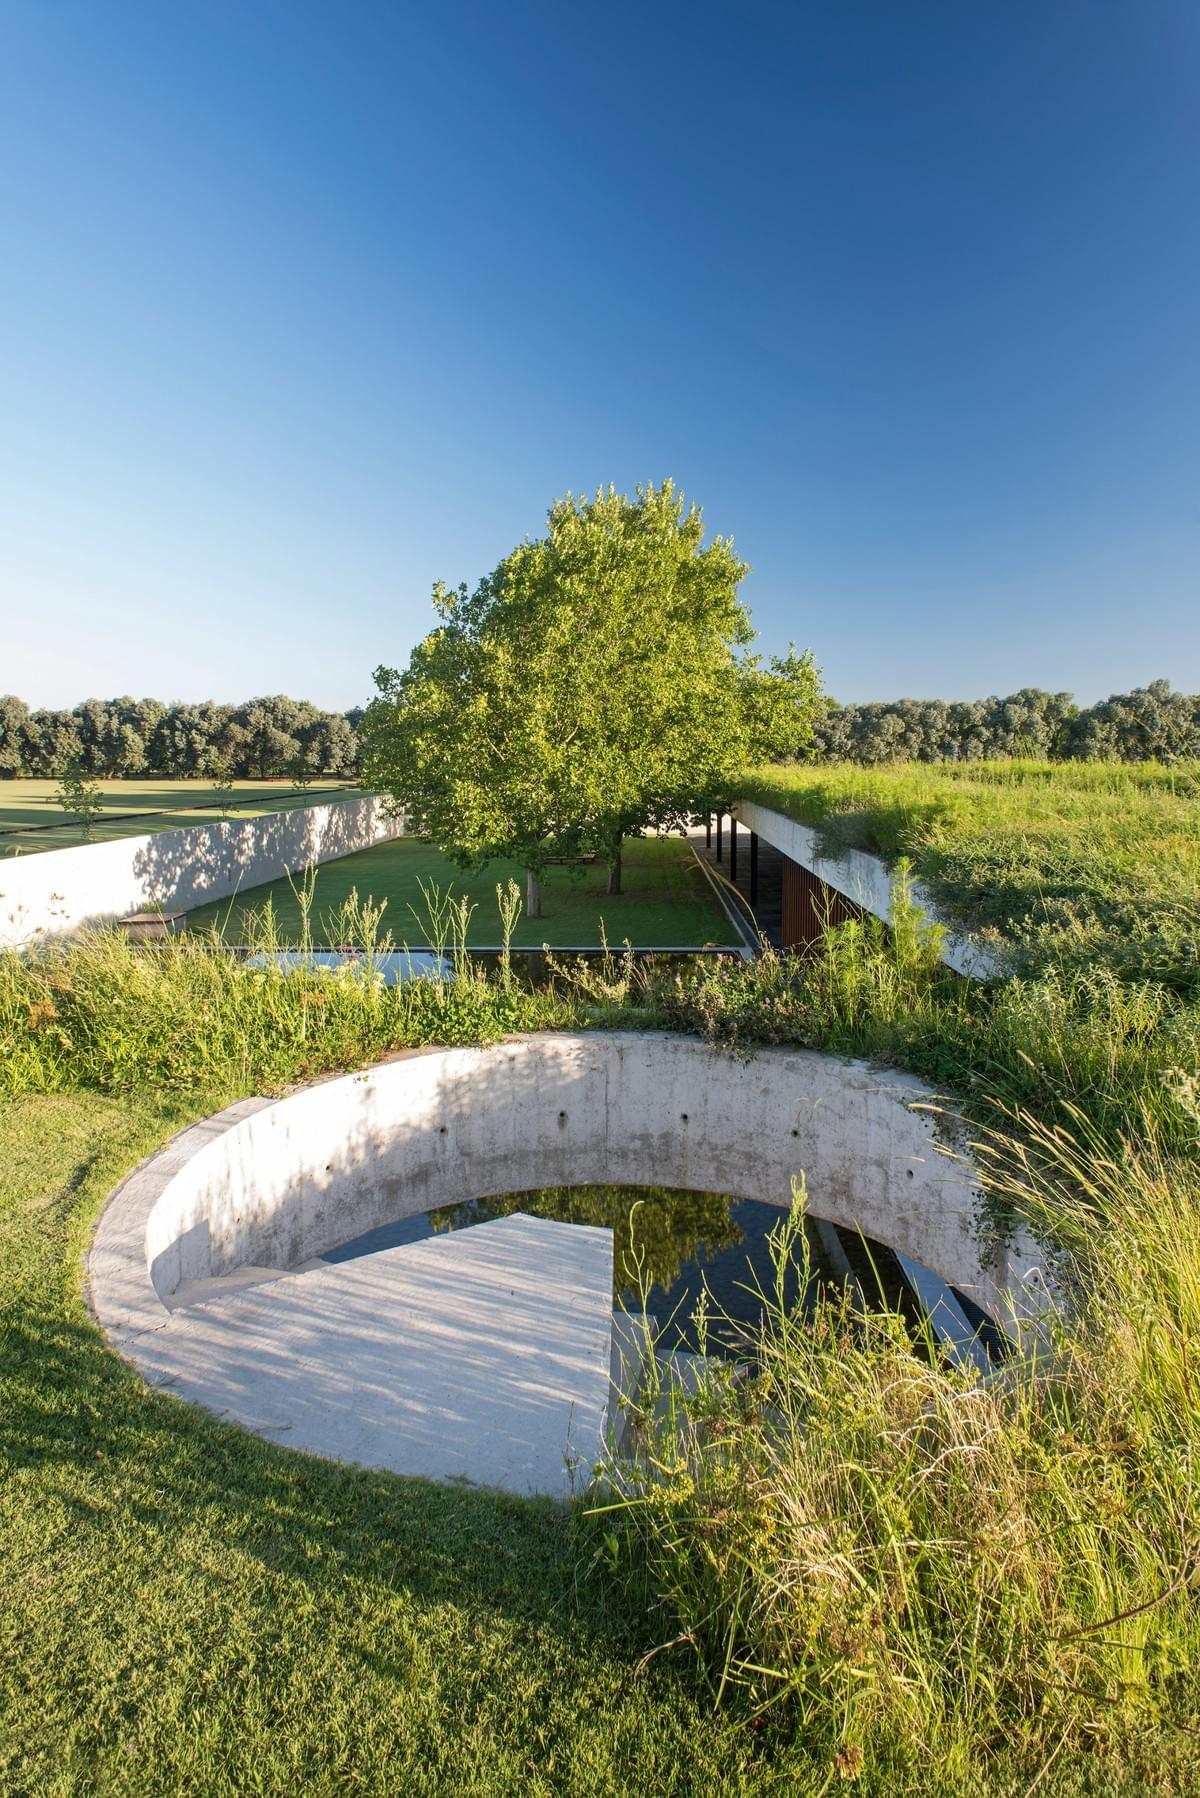 Stunning concrete stables features grassy roof for horses to graze Estudio Ramos